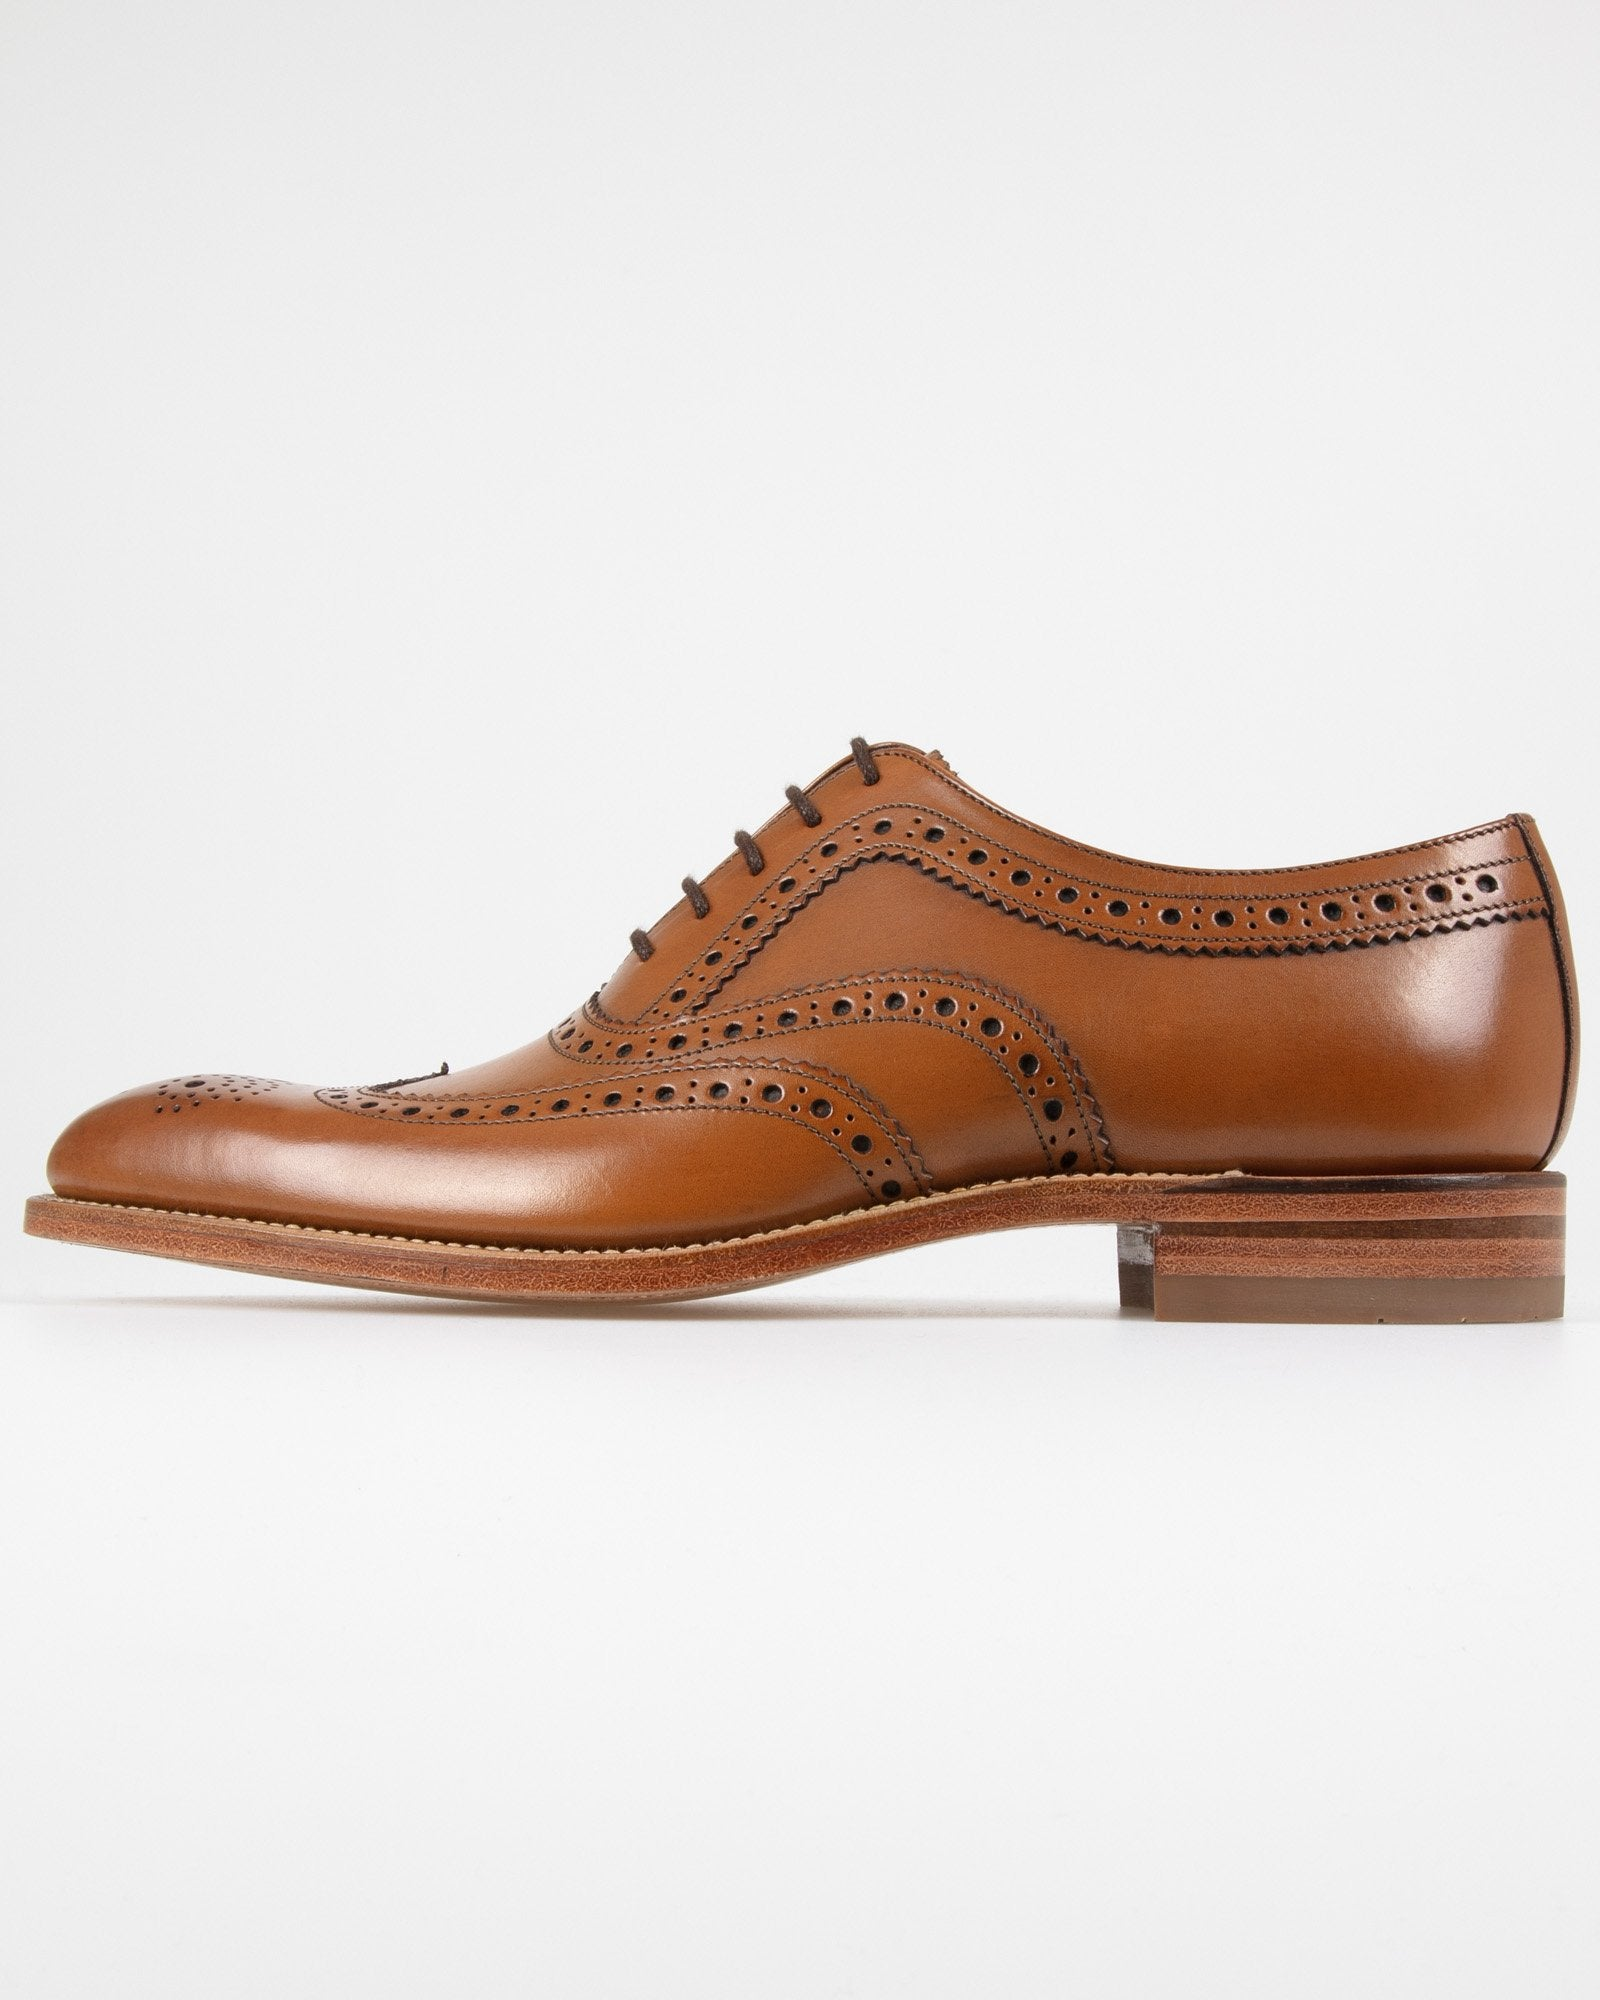 Loake Fearnley Brogue Oxford - Dark Brown UK 7 FEADK7 5050362202487 Loake Shoemakers Shoes Loake Fearnley Brogue Oxford - Dark Brown - Jeans and Street Fashion from Jeanstore